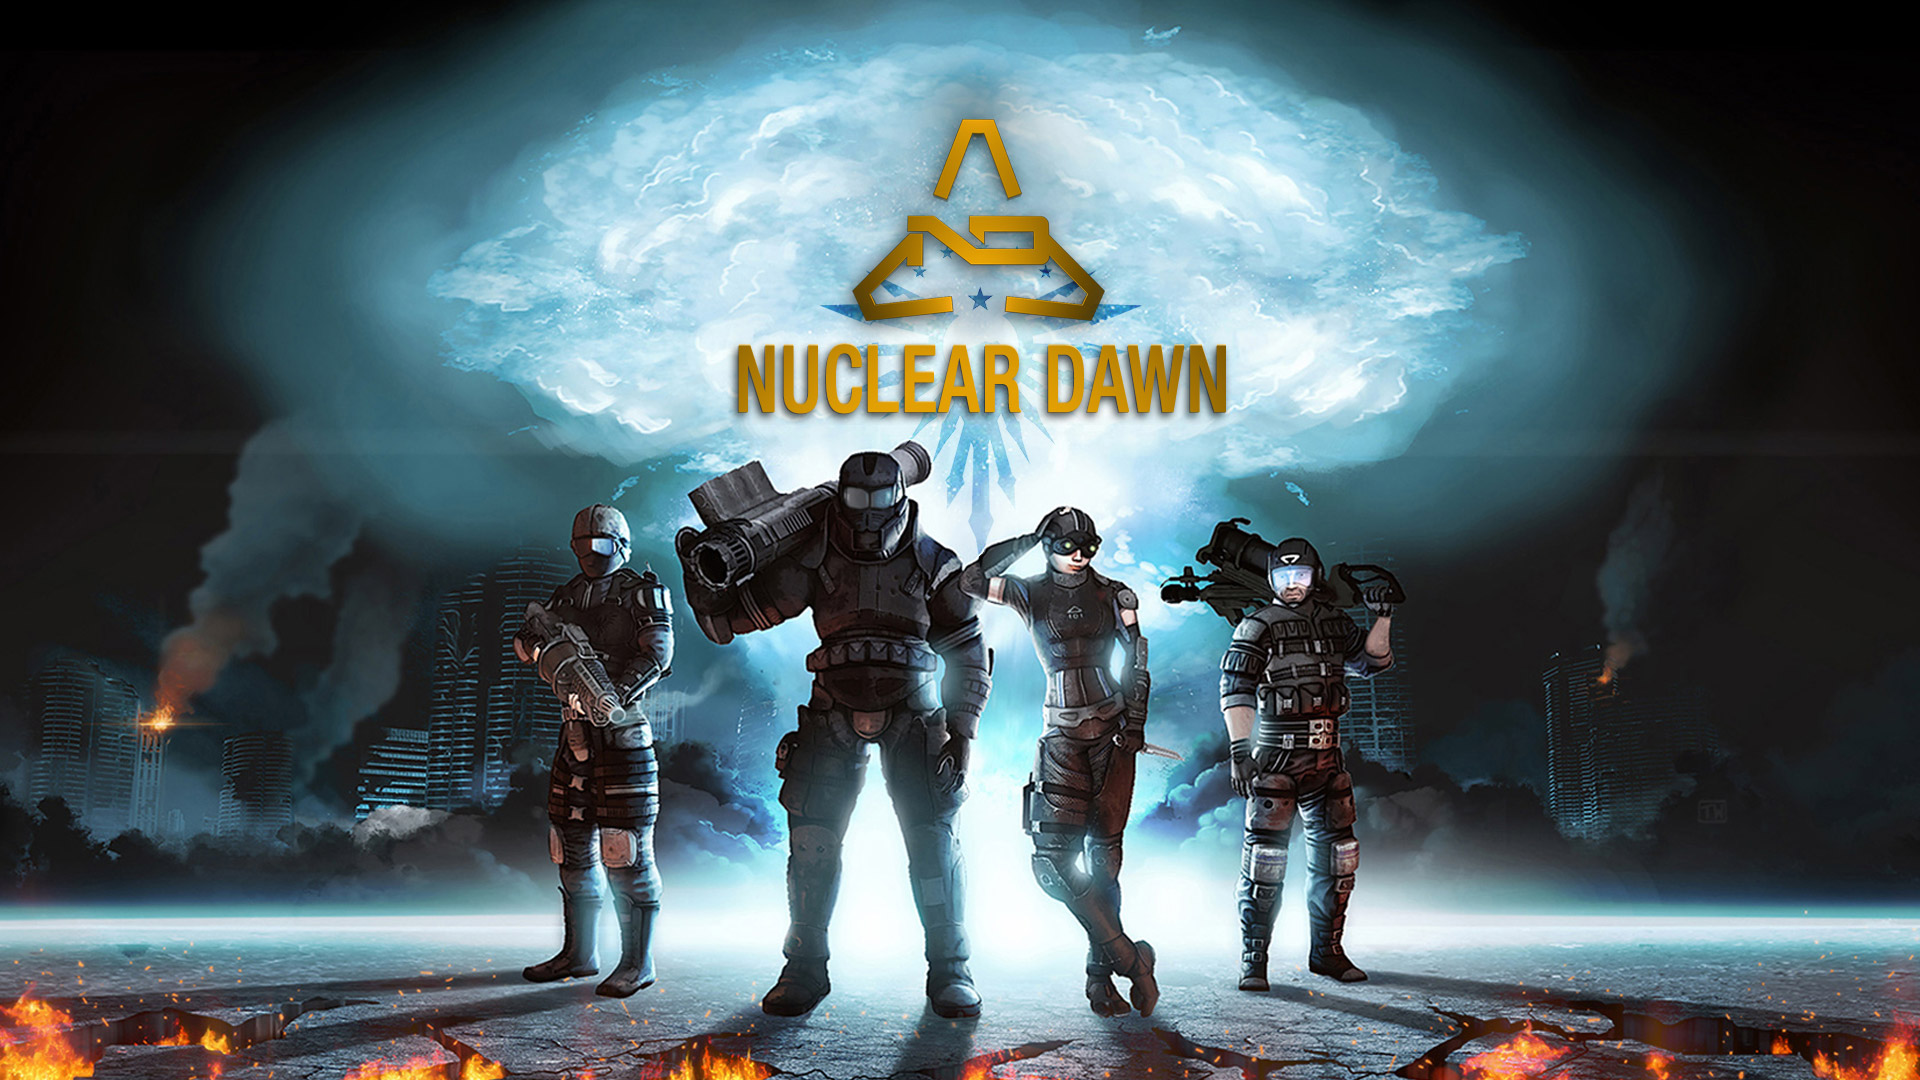 Free Nuclear Dawn Wallpaper in 1920x1080